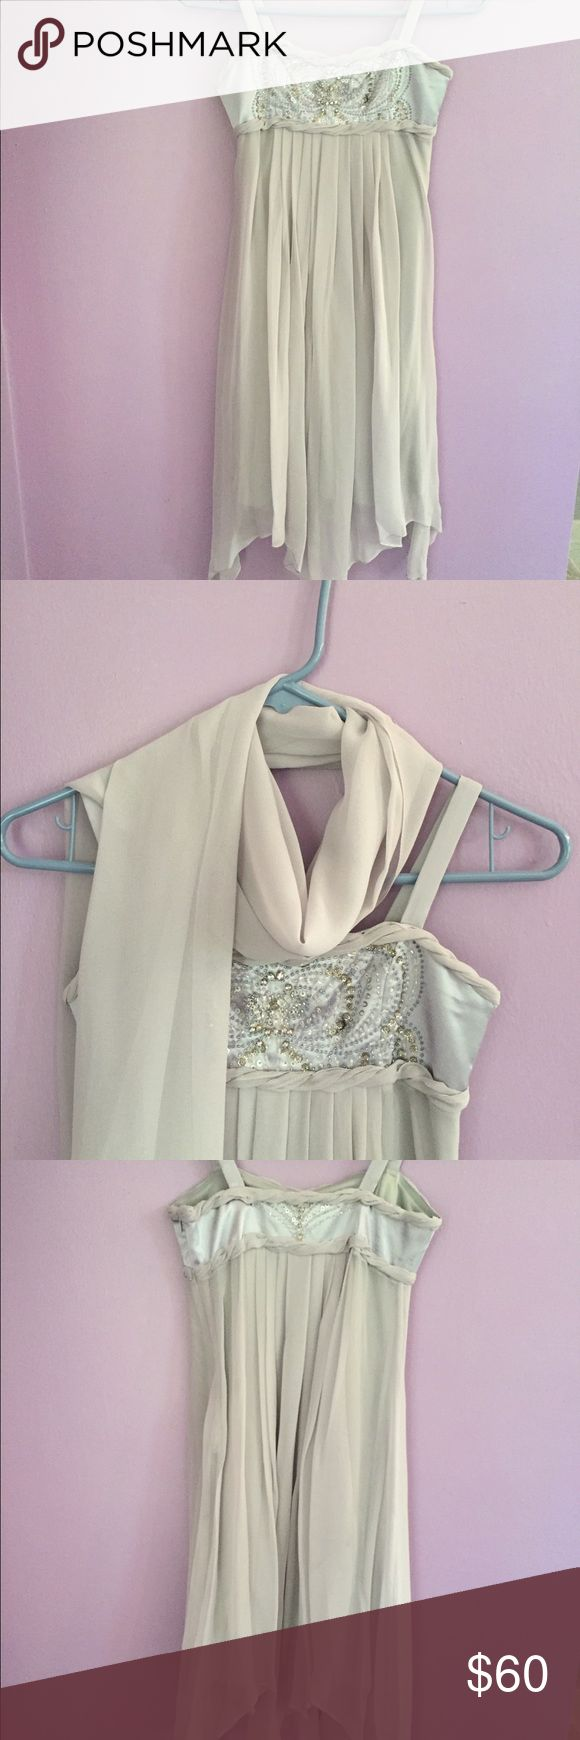 ⚡️REDUCED GIRLS pearl gray 100% silk dress Gorgeous girls special occasion dress with handkerchief hemline and matching sheer scarf. The satin bodice is beaded front and back with sequins and rhinestones. 100% silk, fully lined with side zipper. The Collection by Sara Sara. Only worn once. Sara Sara Dresses Formal